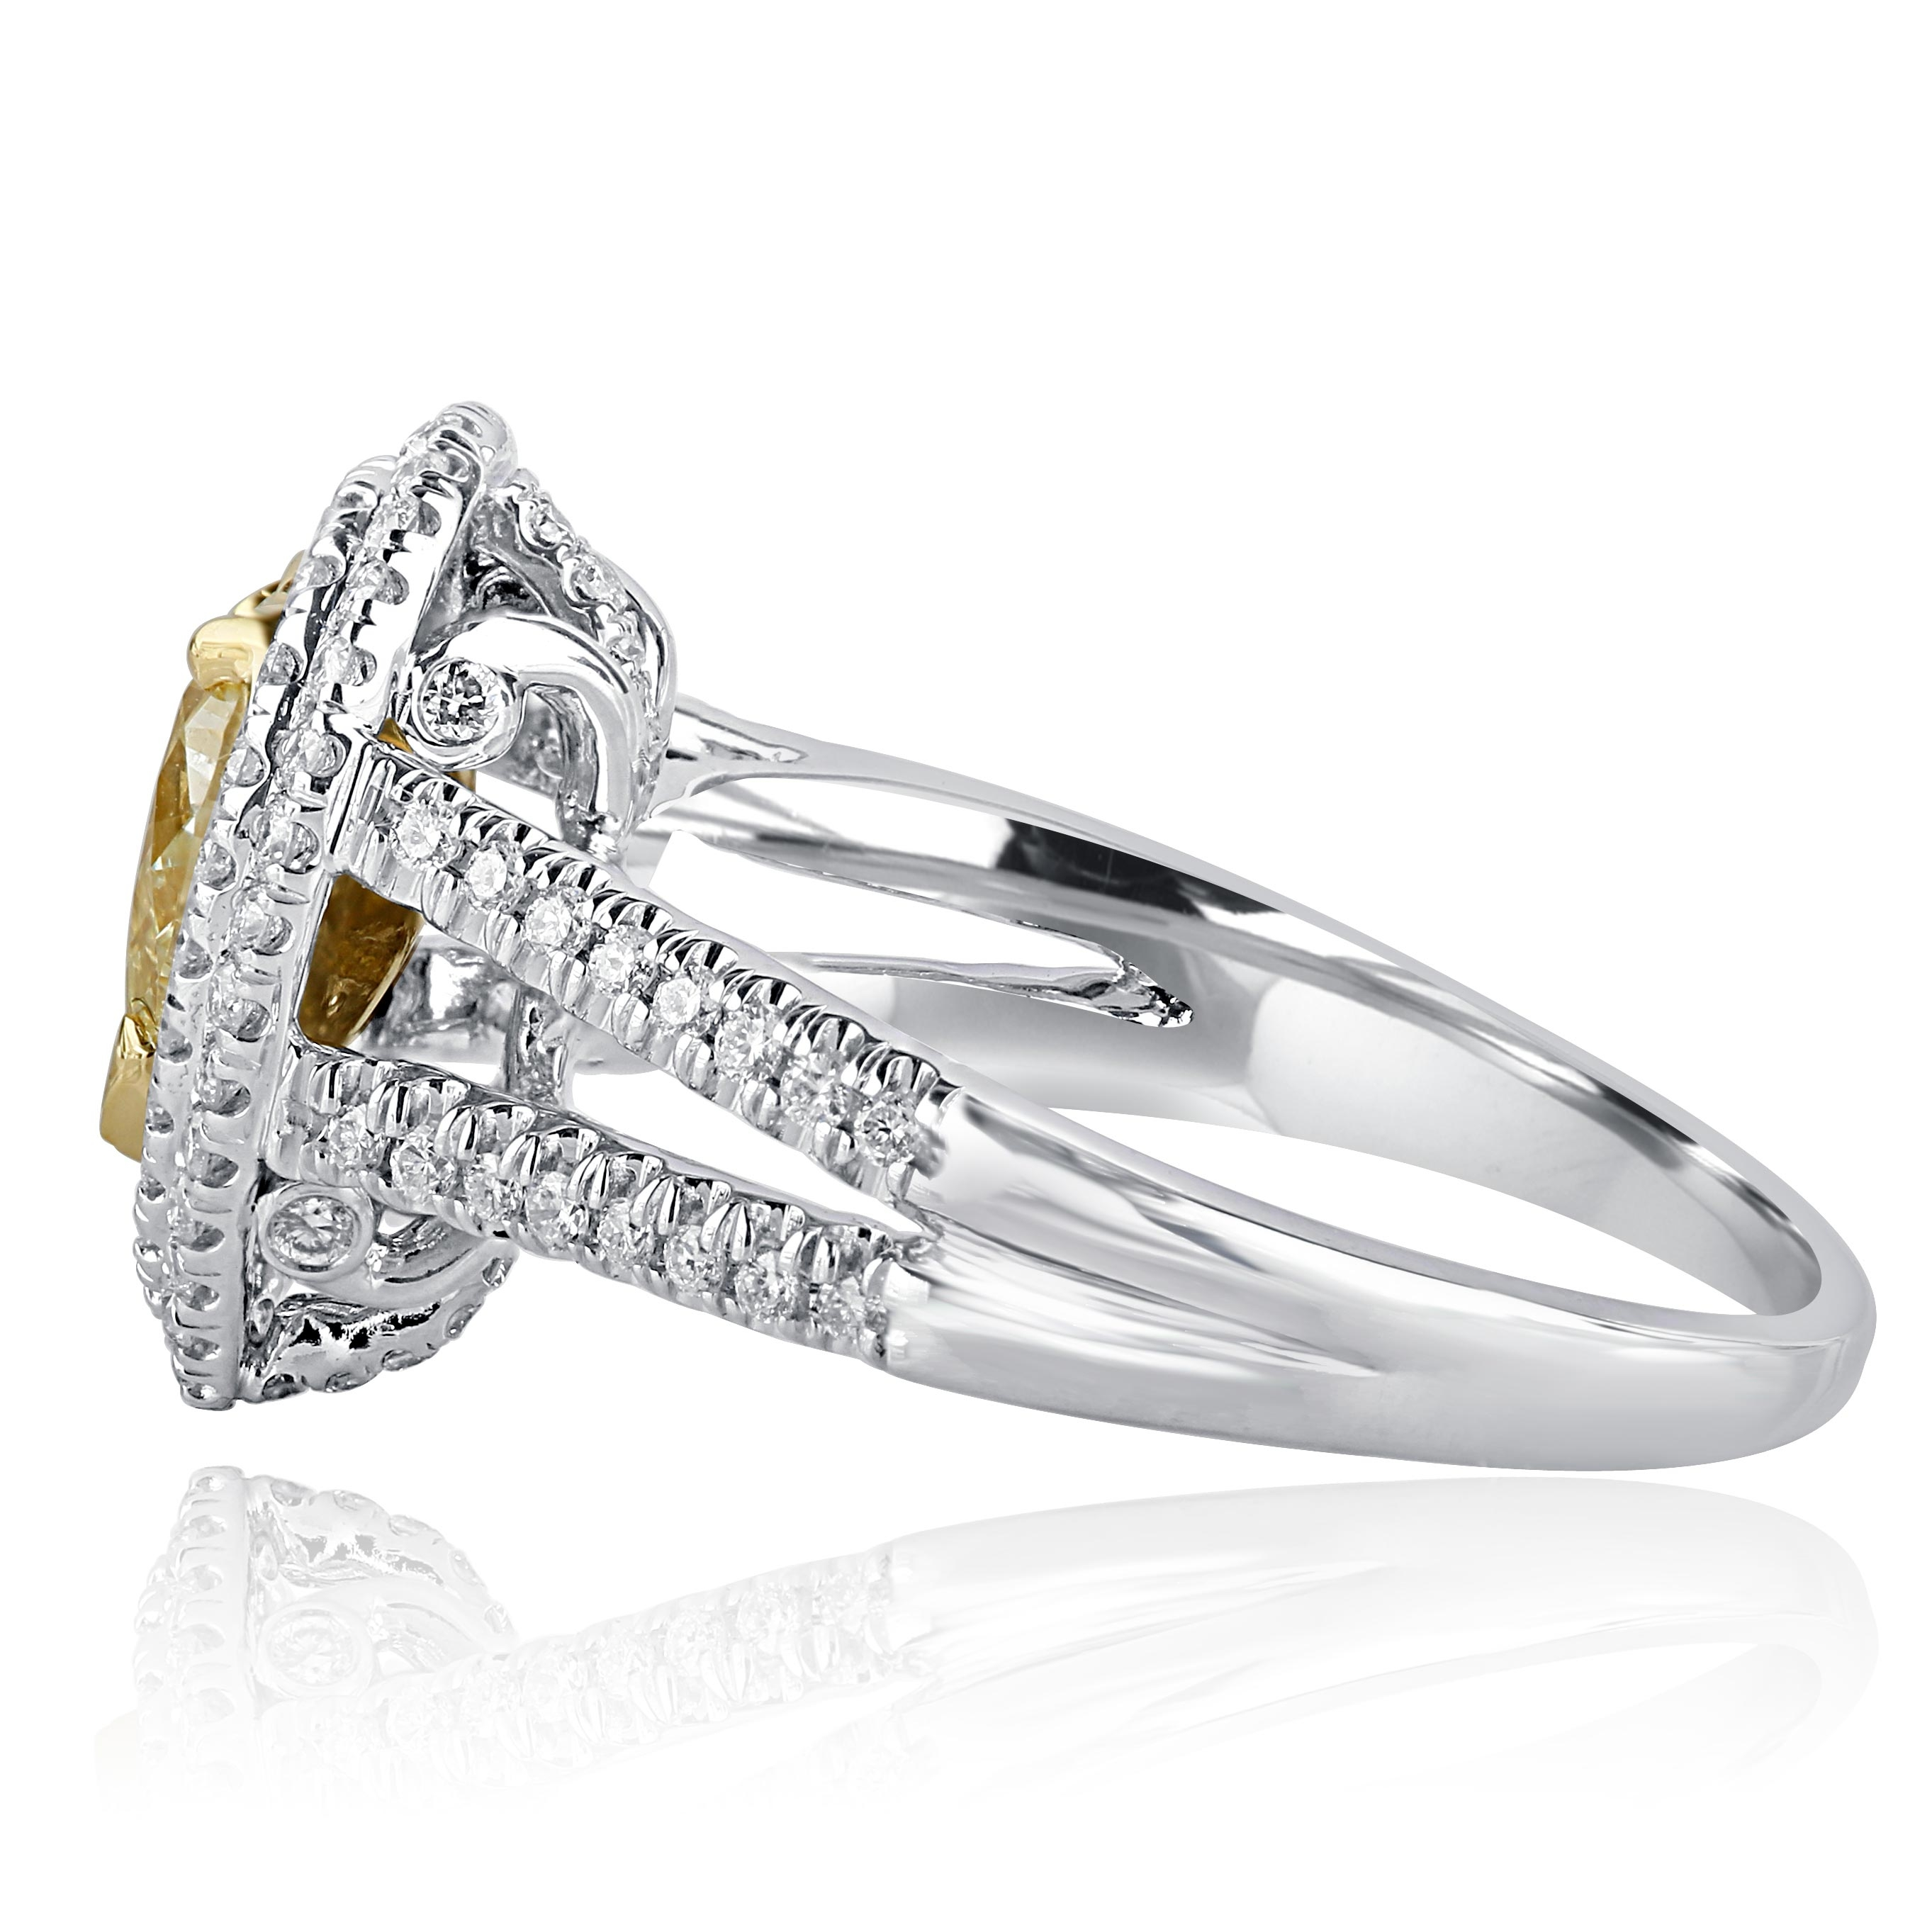 pin pear ever diamond perhaps shaped wedding engagement ring the beautiful rings most